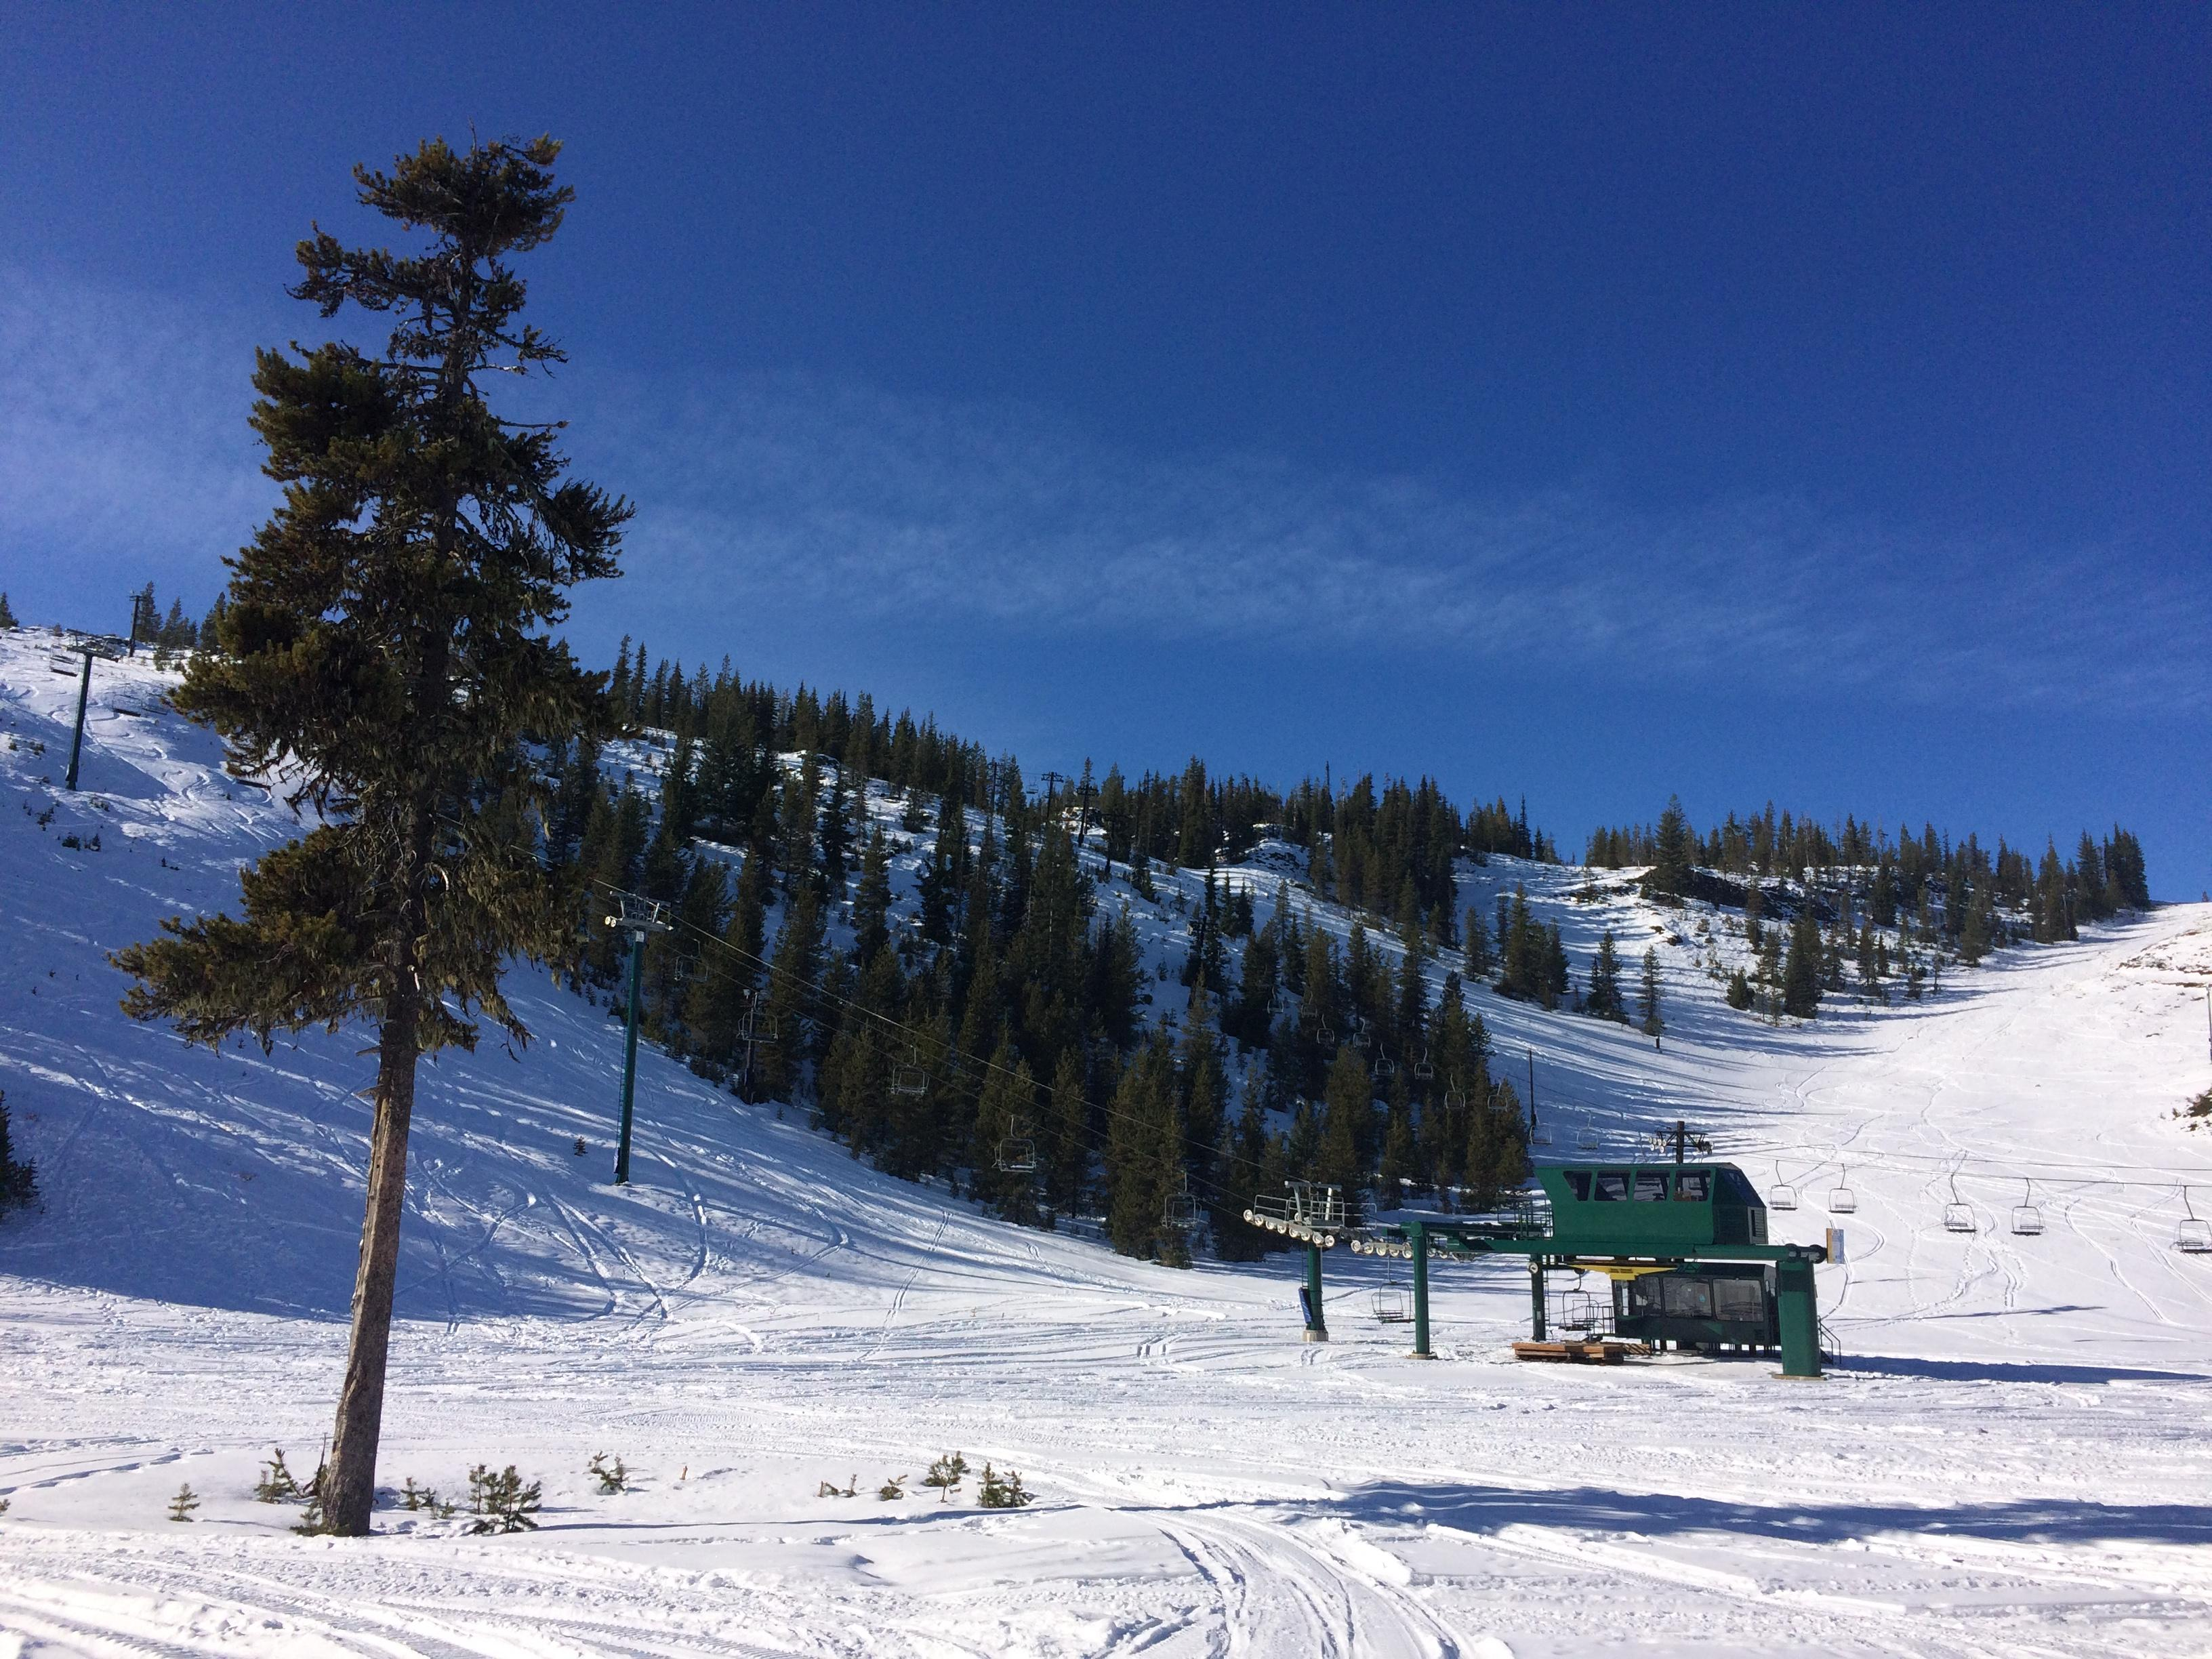 Hoodoo still needs 16 inches more of snow; they hope to open during winter break. (SBG)